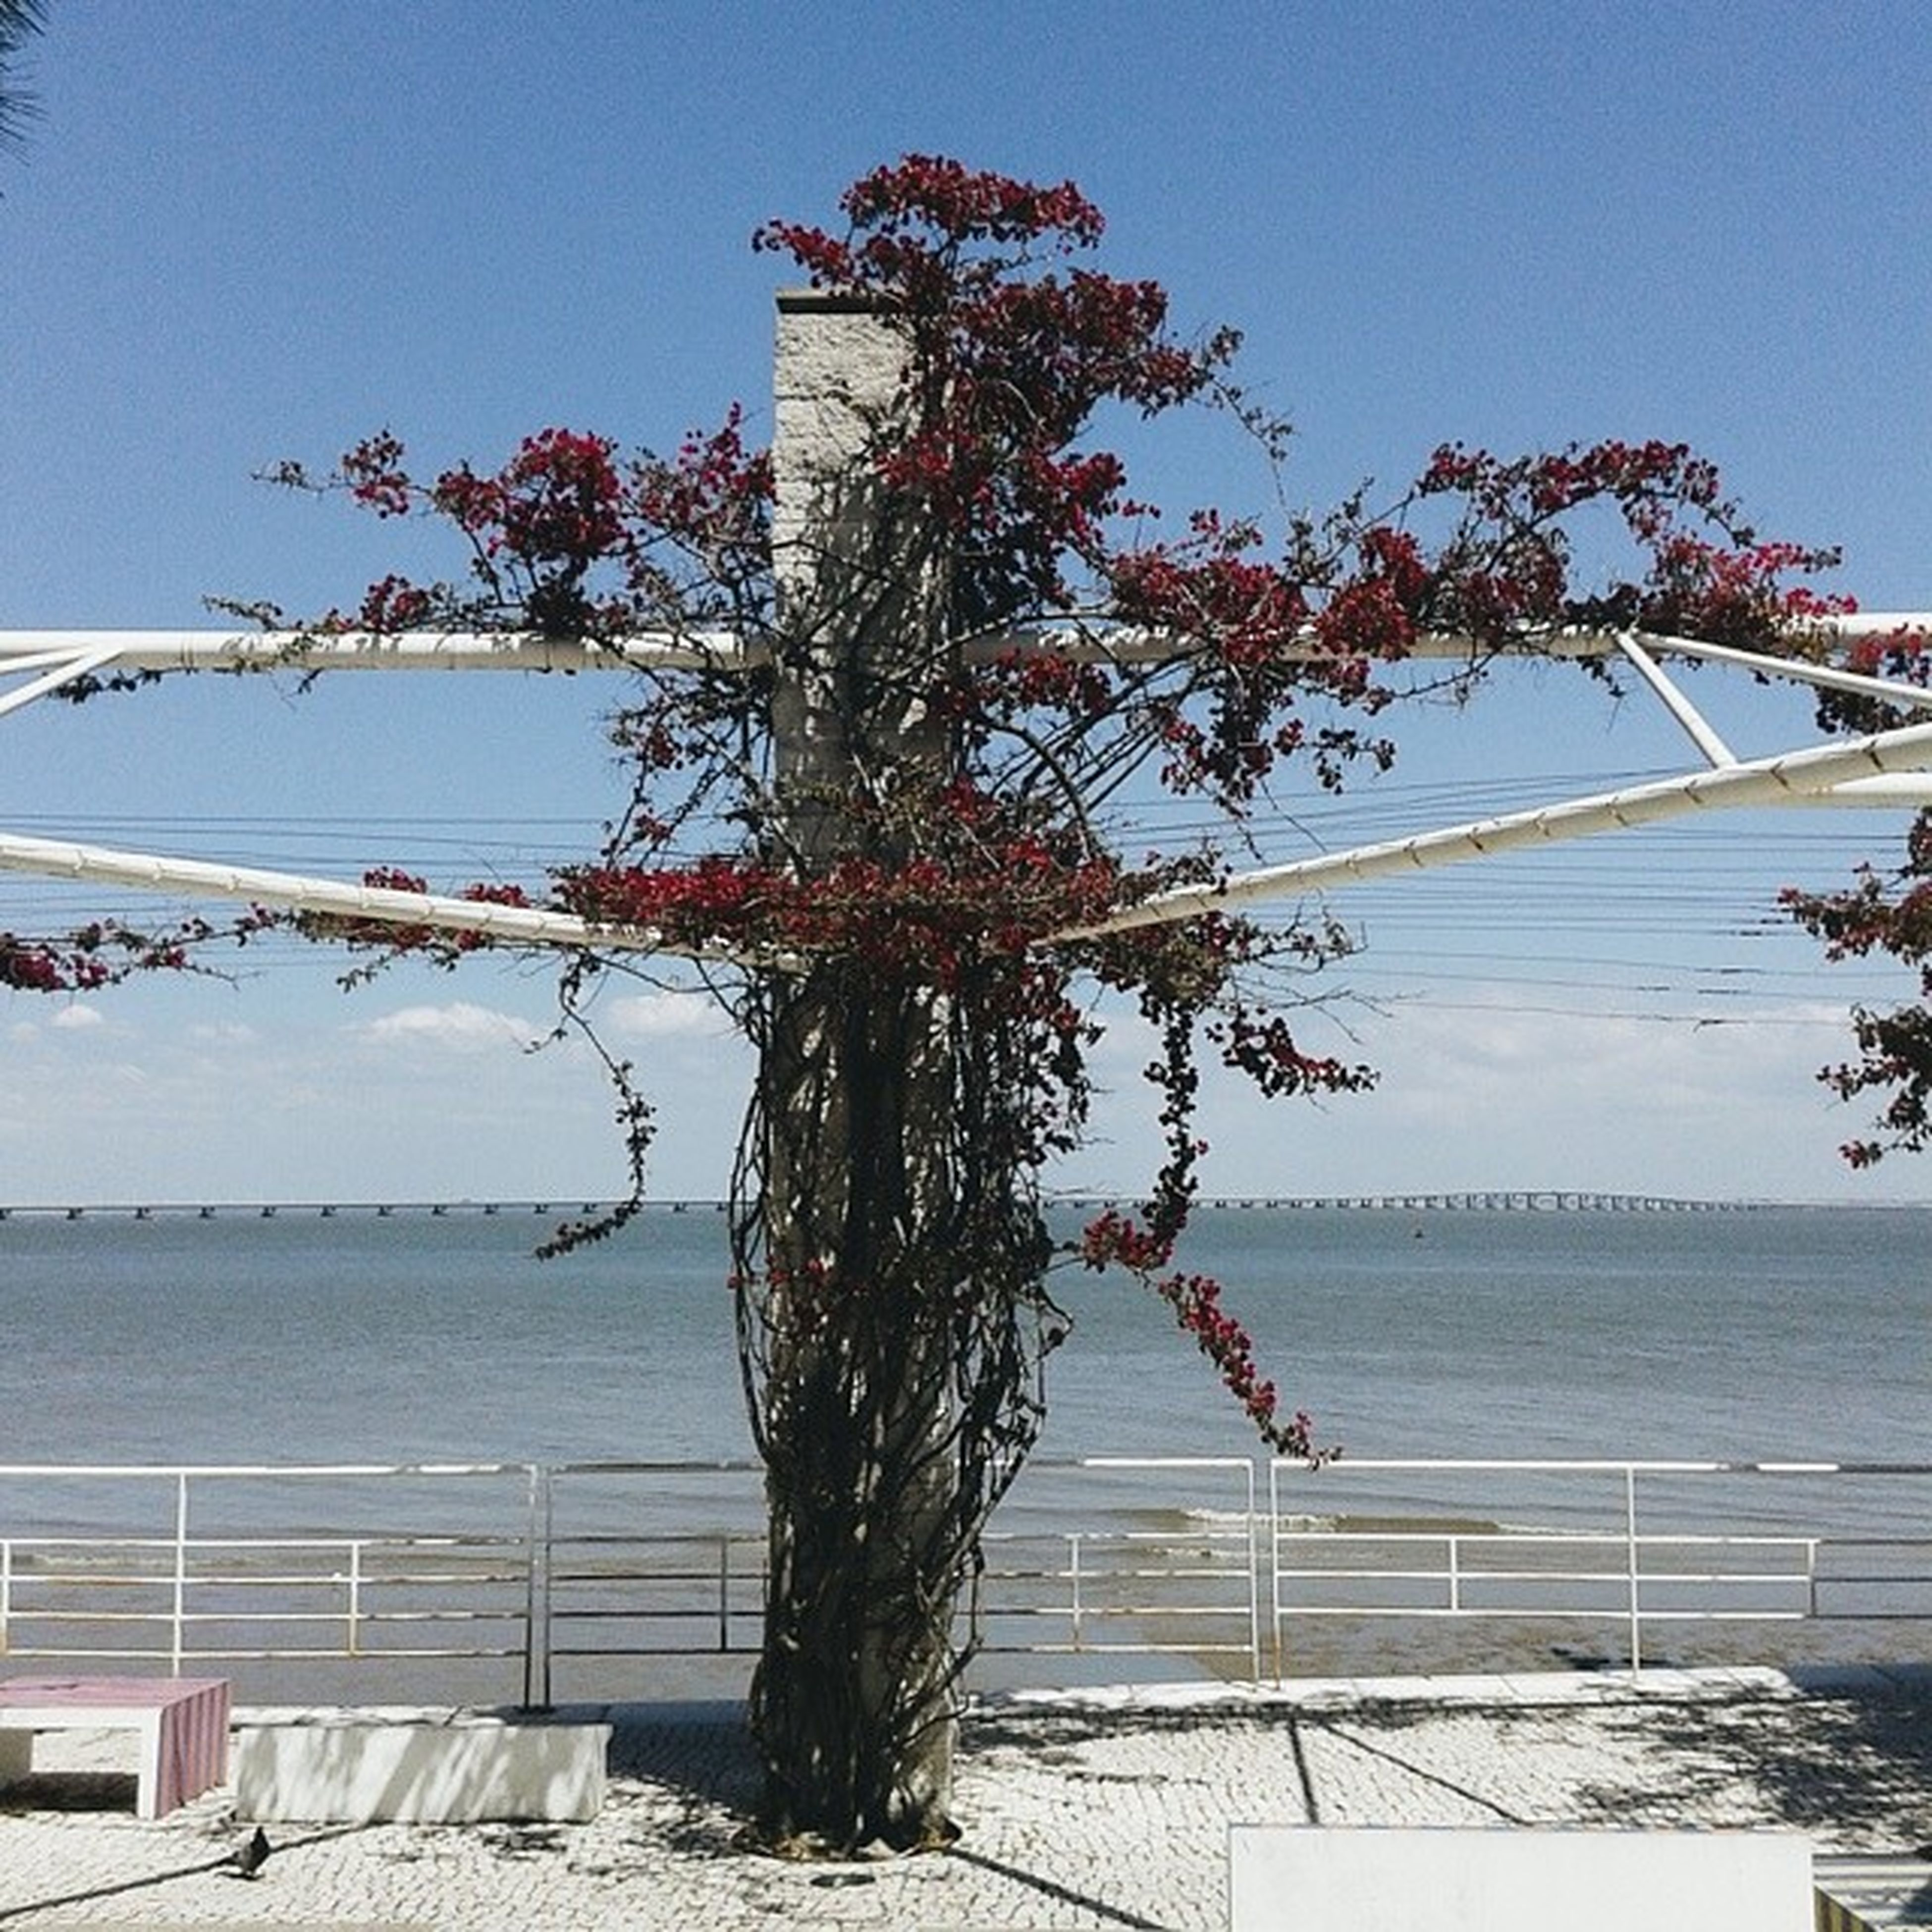 water, clear sky, tree, nature, sky, flower, growth, beauty in nature, railing, tranquility, lake, branch, sea, sunlight, no people, tranquil scene, day, outdoors, plant, scenics